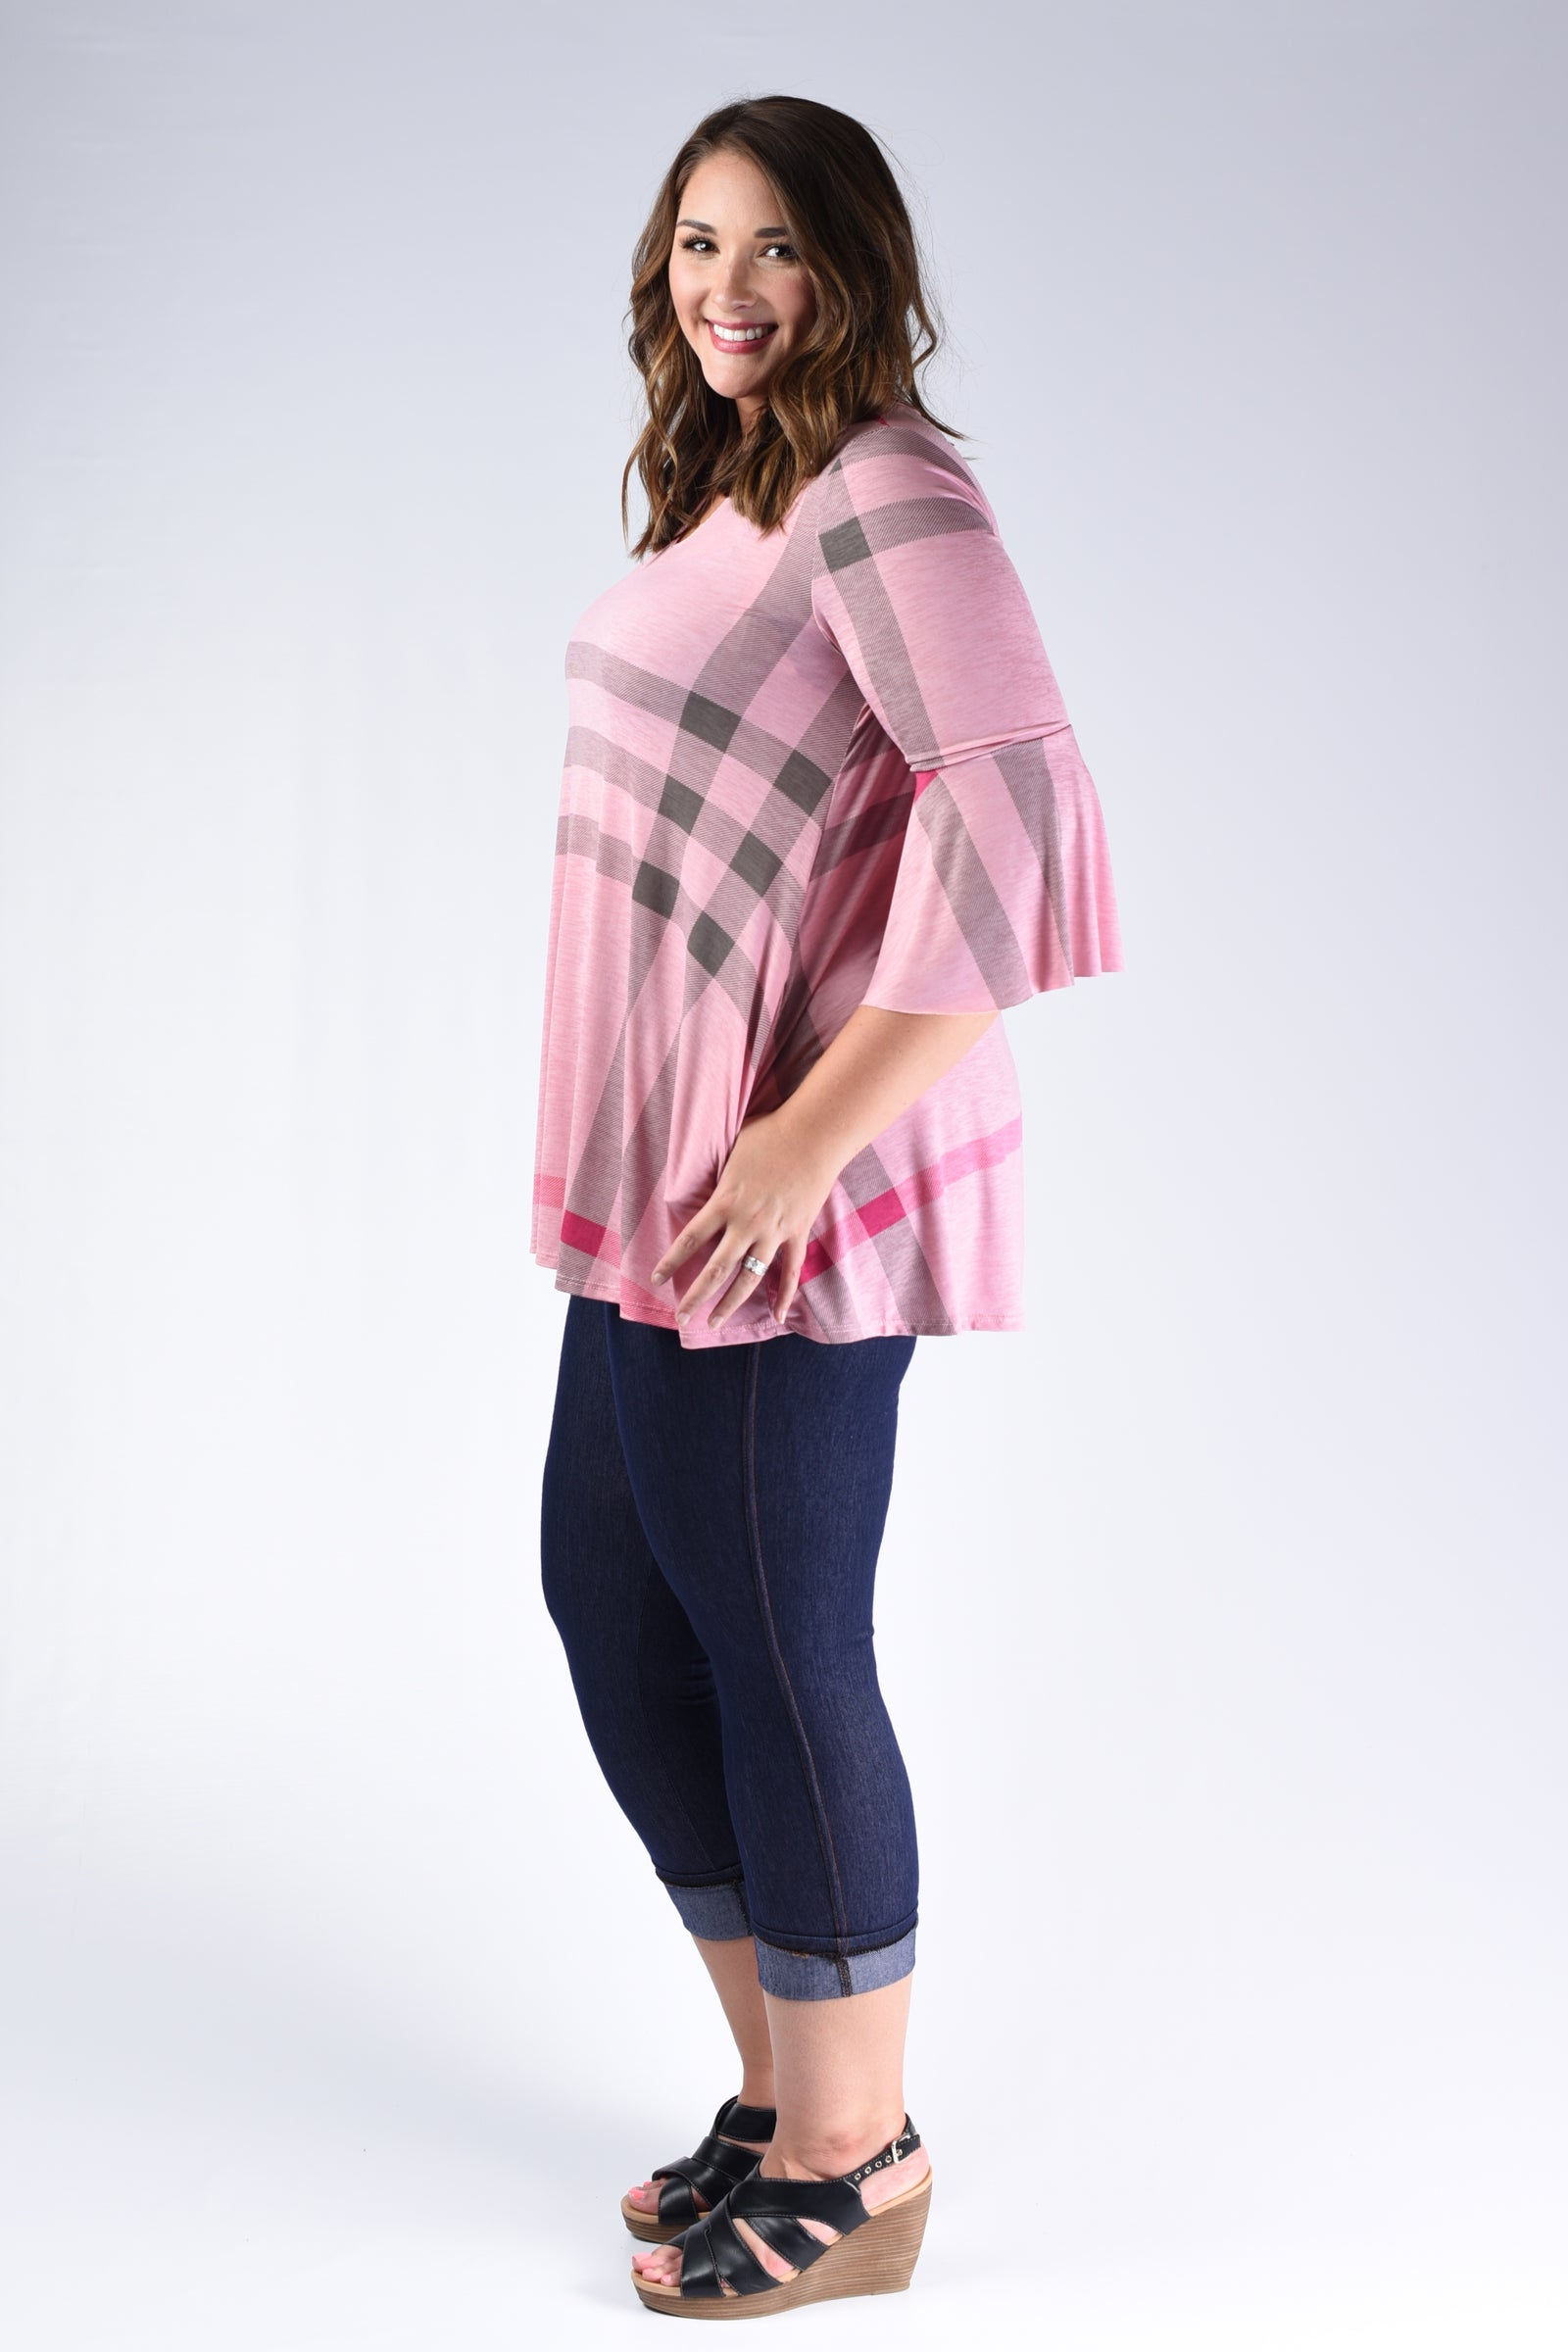 Pink Burberry Plaid Top - www.mycurvystore.com - Curvy Boutique - Plus Size